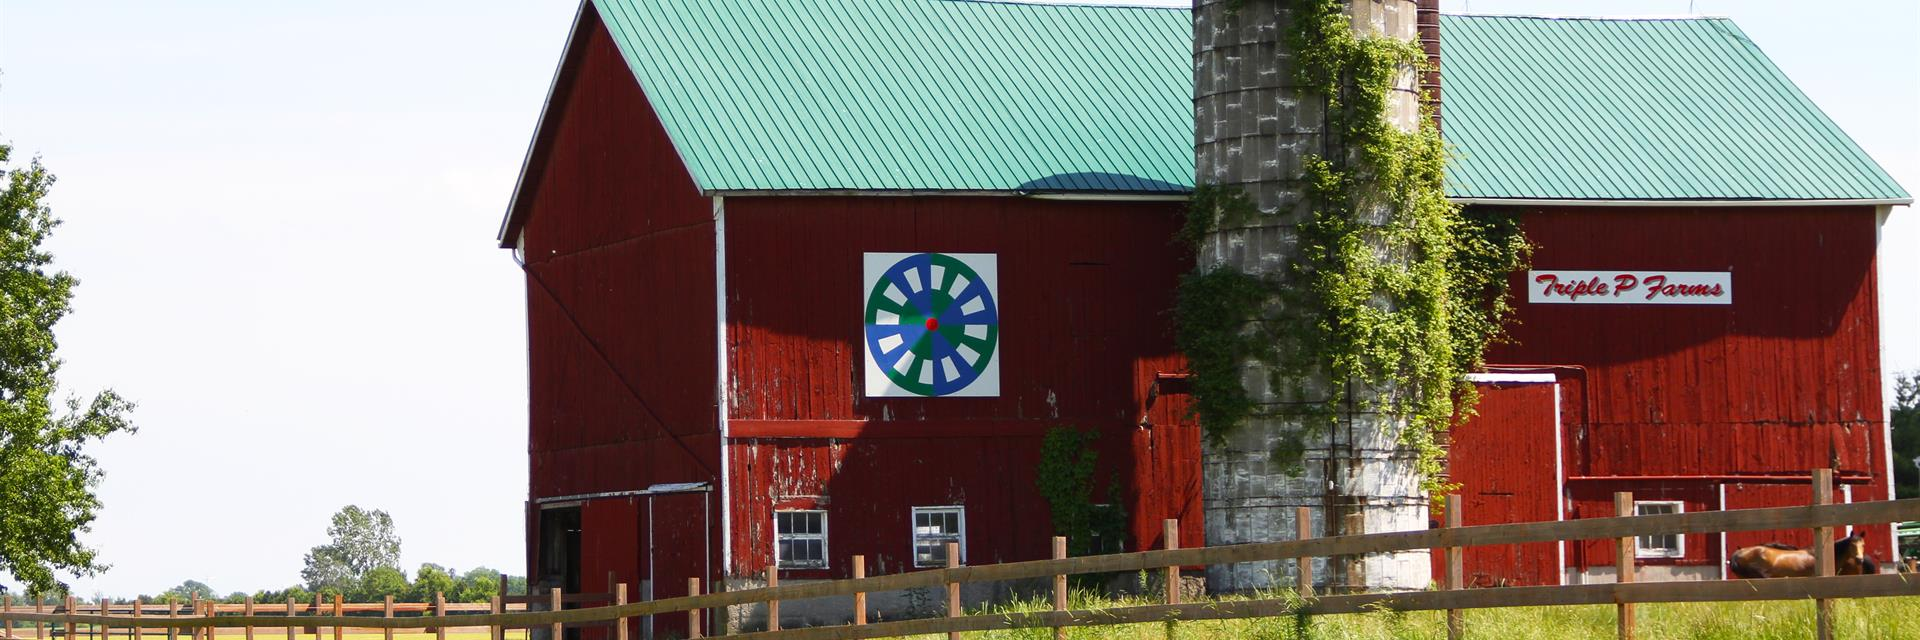 a barn quilt attached to the side of a barn on the thames river barn quilt trail